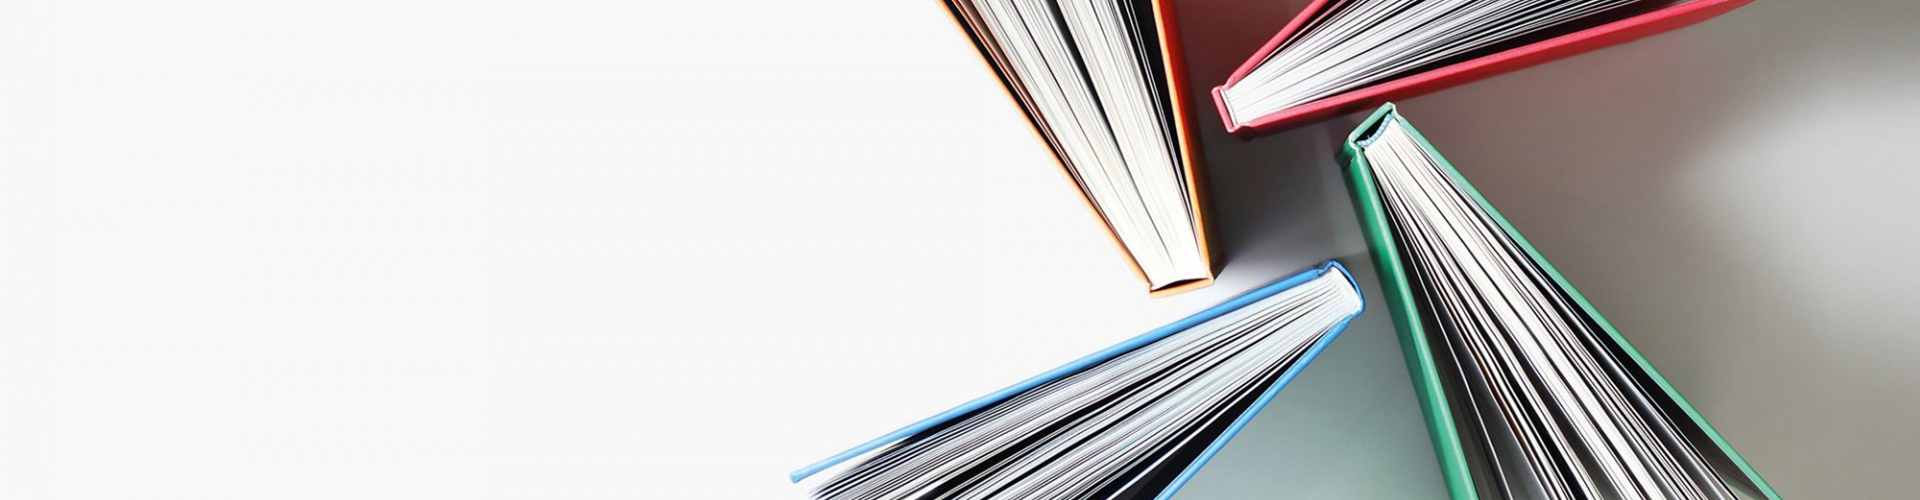 012. Books, Magazines, Newspapers , Educational and Training Material